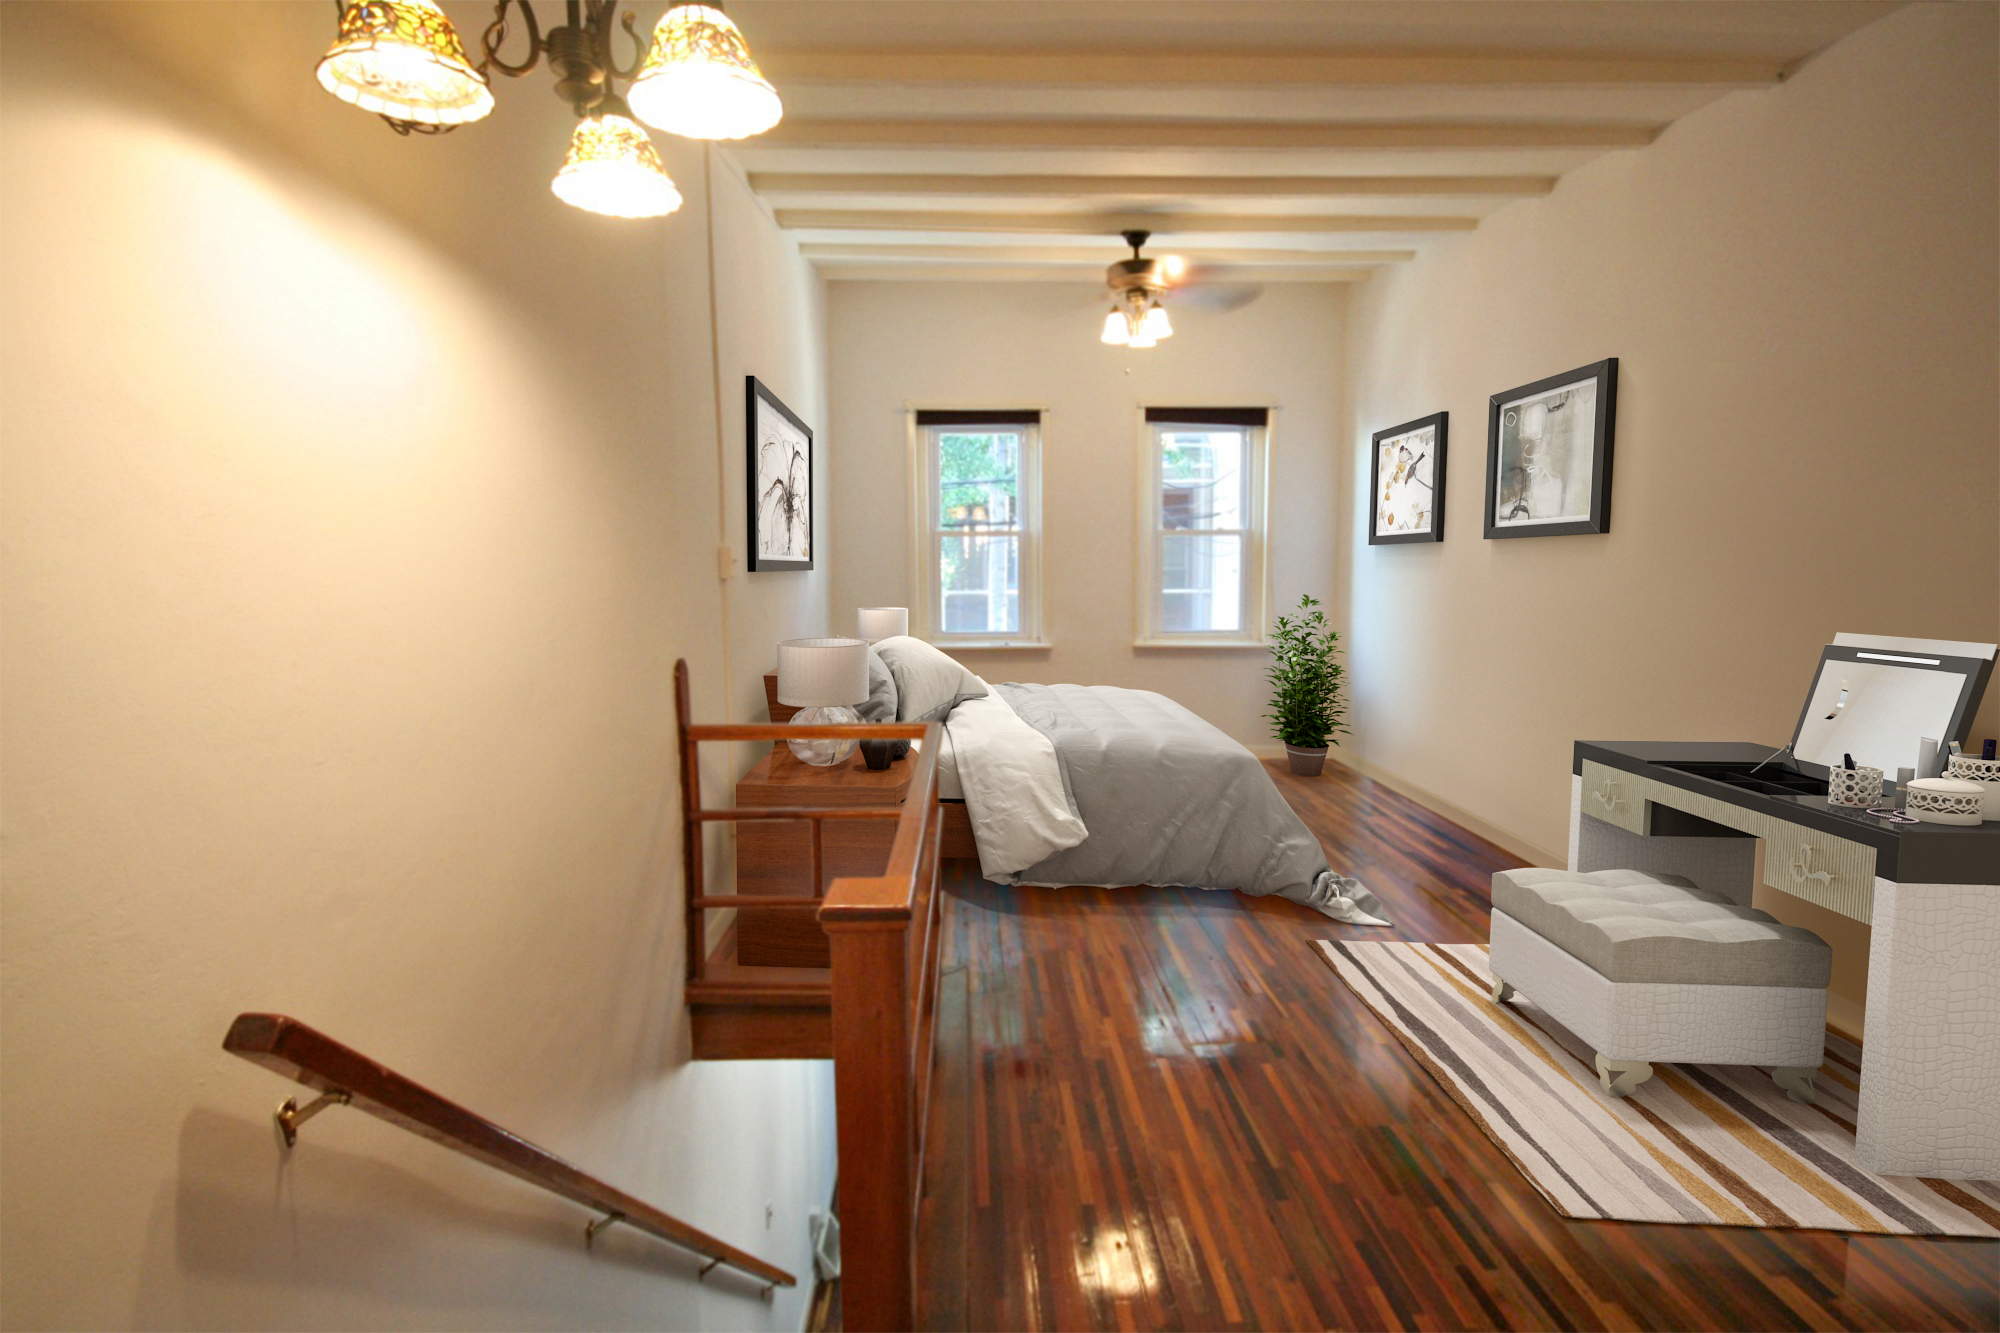 Queen Village  1 bed  1 bath  This little two story gem in Queen Village is  probably best suited for someone looking for a starter home. 5 Philly homes for sale for  250K   Curbed Philly